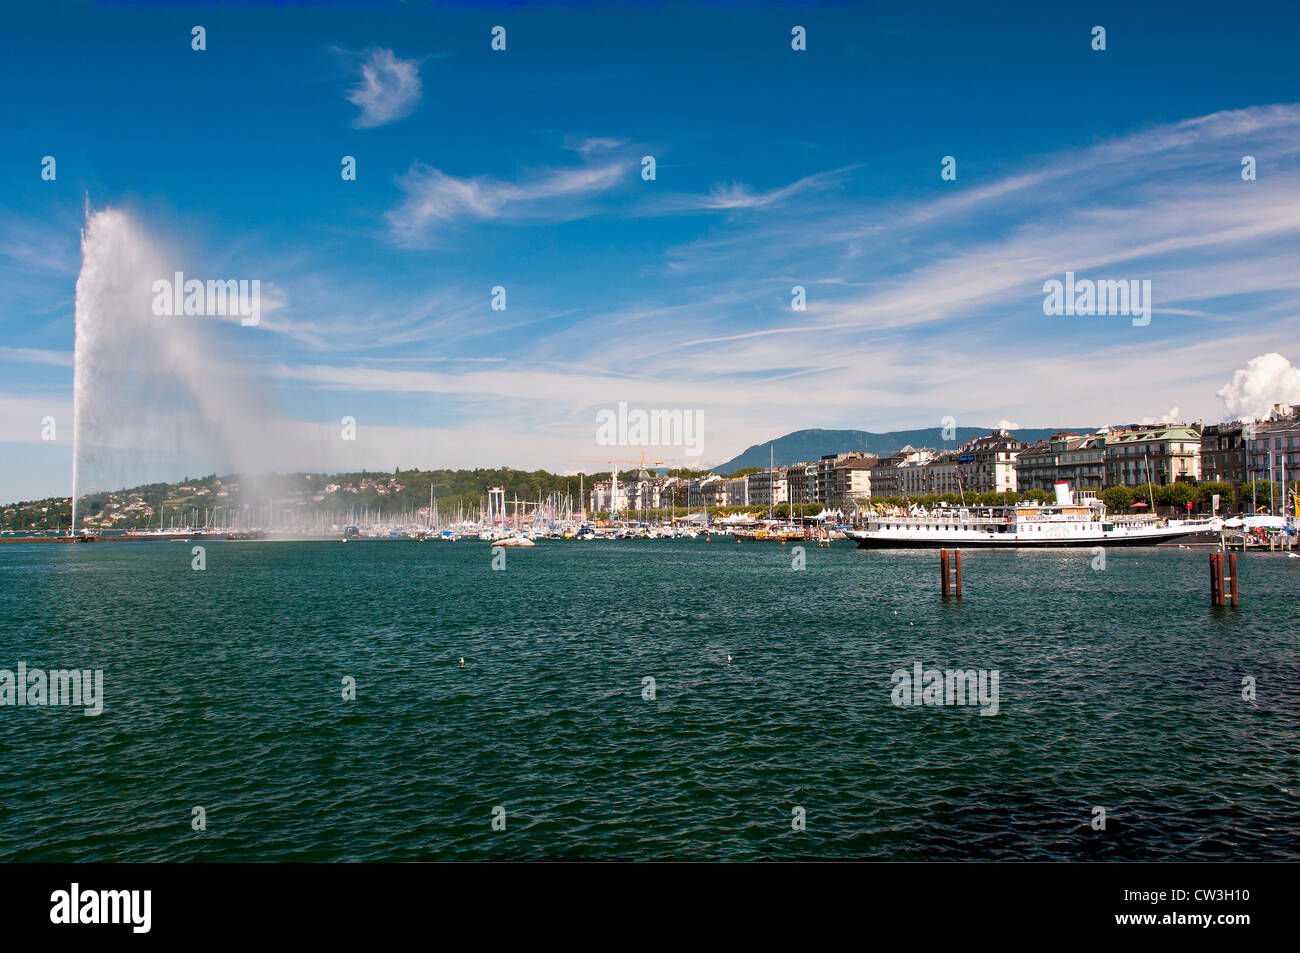 Panoramic view over Lake Geneva and Jet d'Eau water fountain, Geneva, Switzerland - Stock Image